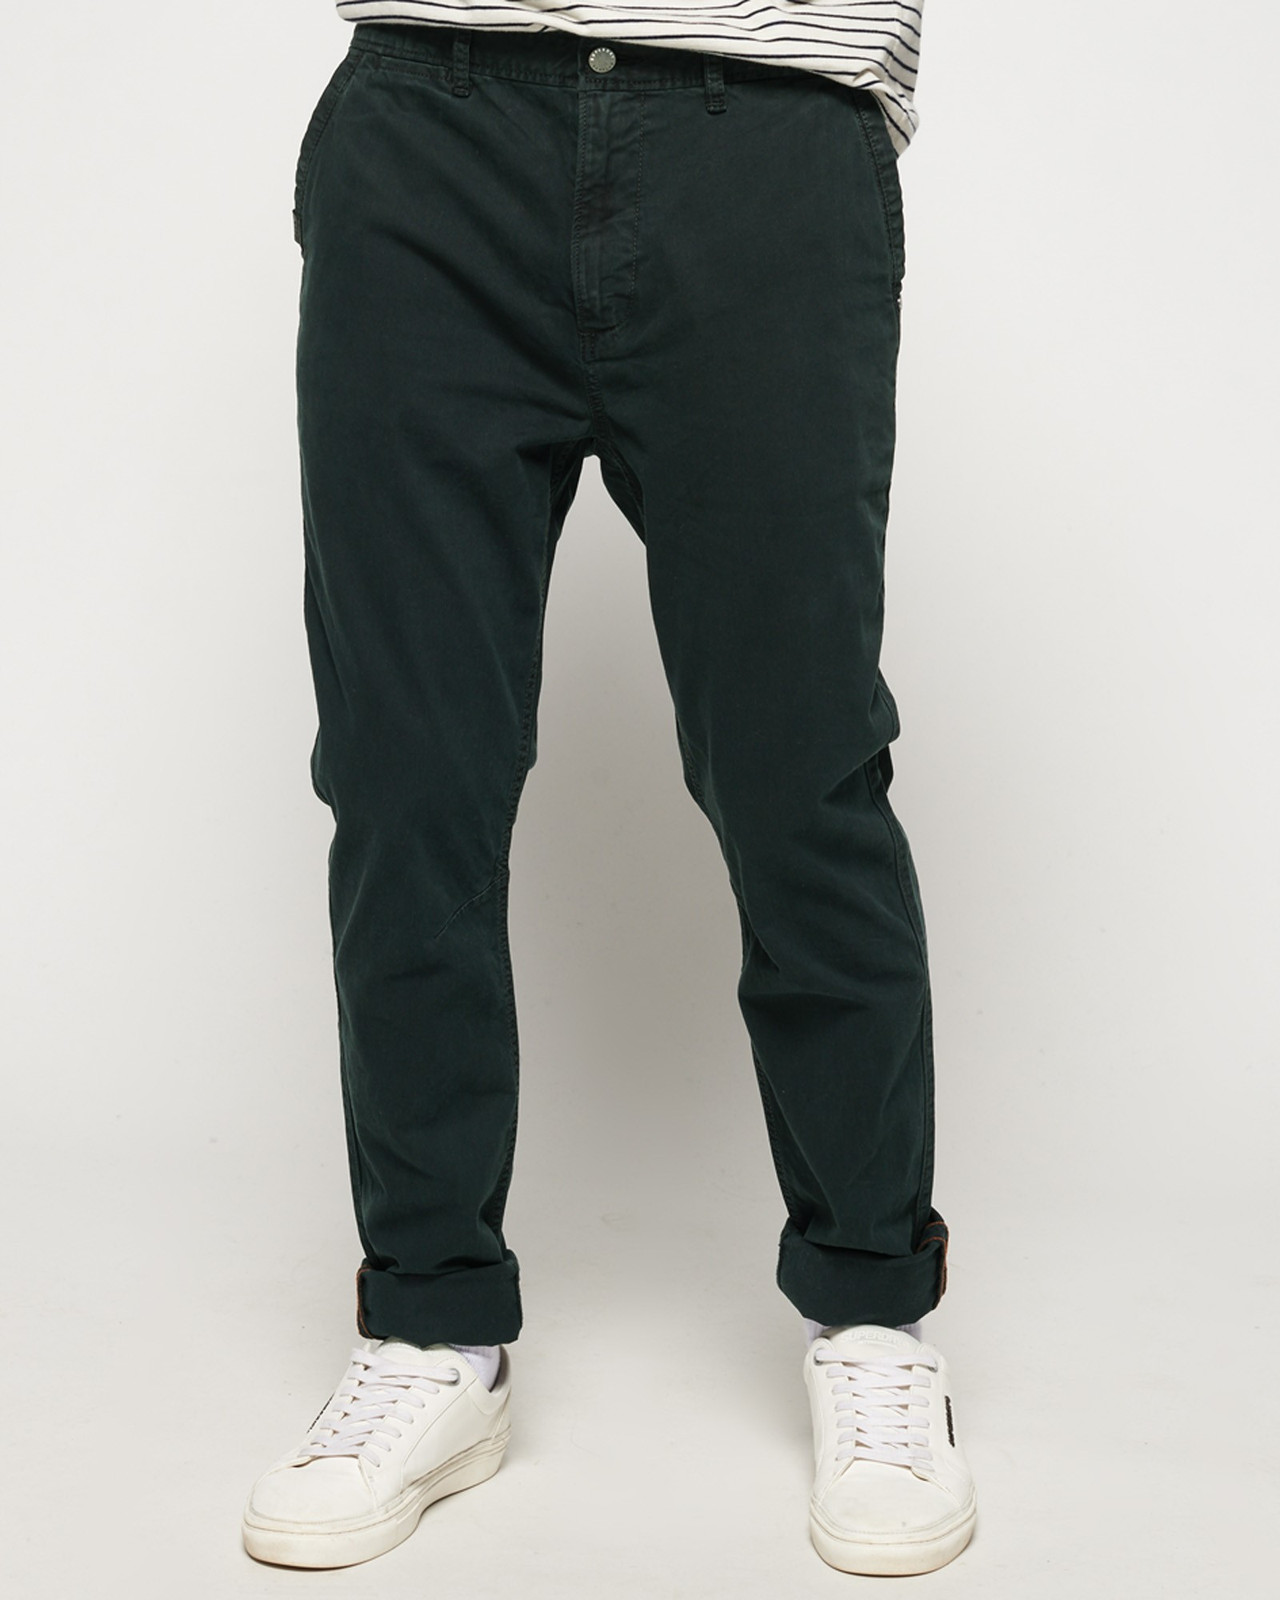 Superdry Mens Surplus Goods Chino Trousers Black Chino Pants 0